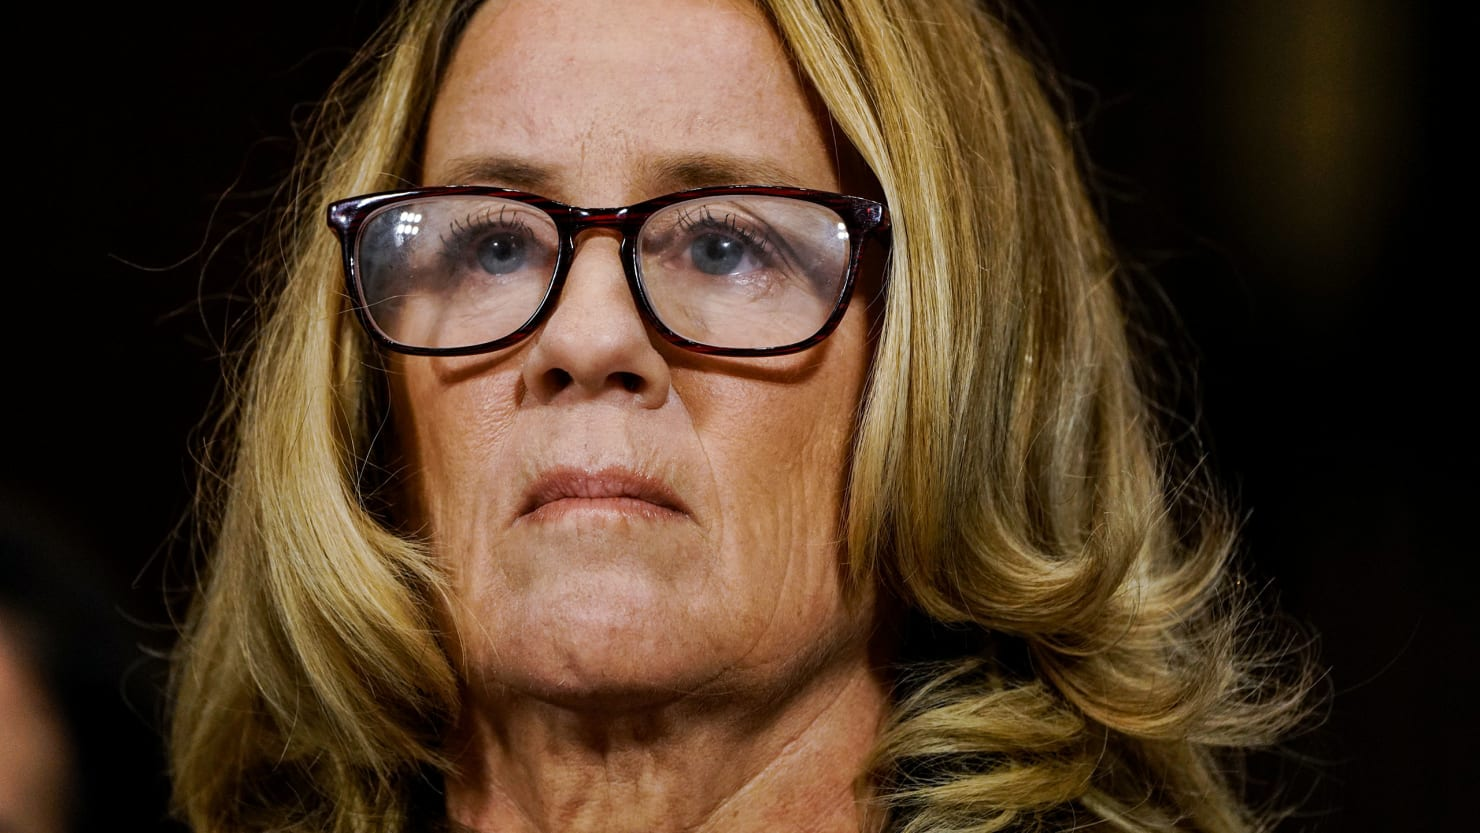 My Ford Benefits >> Christine Blasey Ford Holds Back Tears During Her Kavanaugh Testimony - The Daily Beast